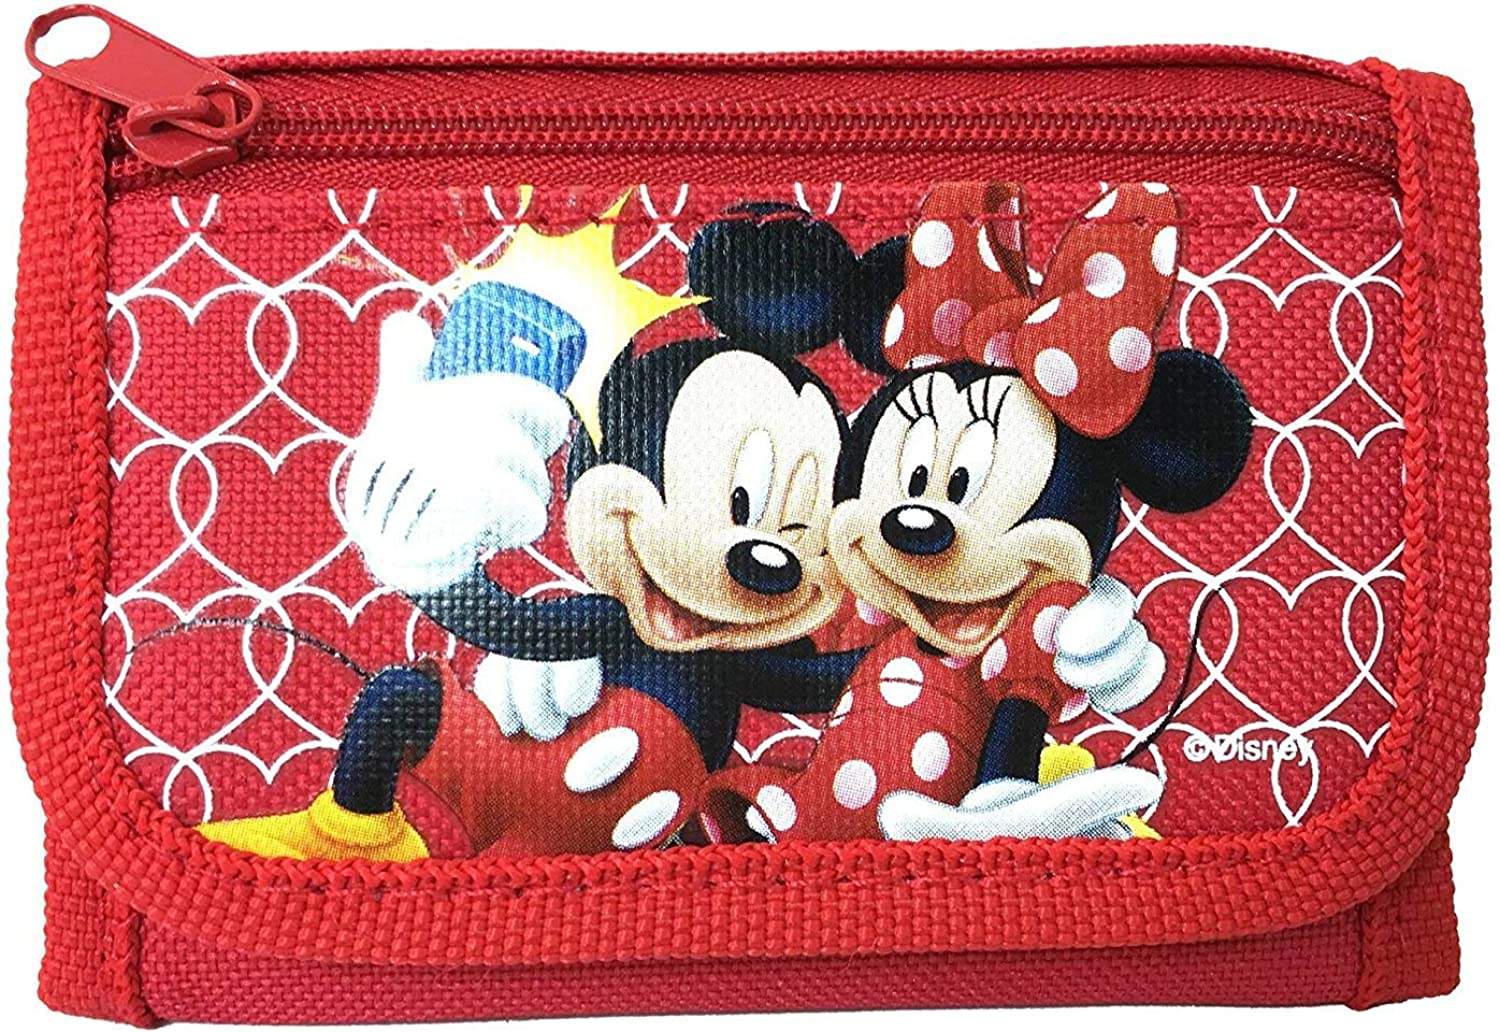 Disney Mickey Mouse Authentic Licensed Trifold Wallet (Red) : Clothing, Shoes & Jewelry